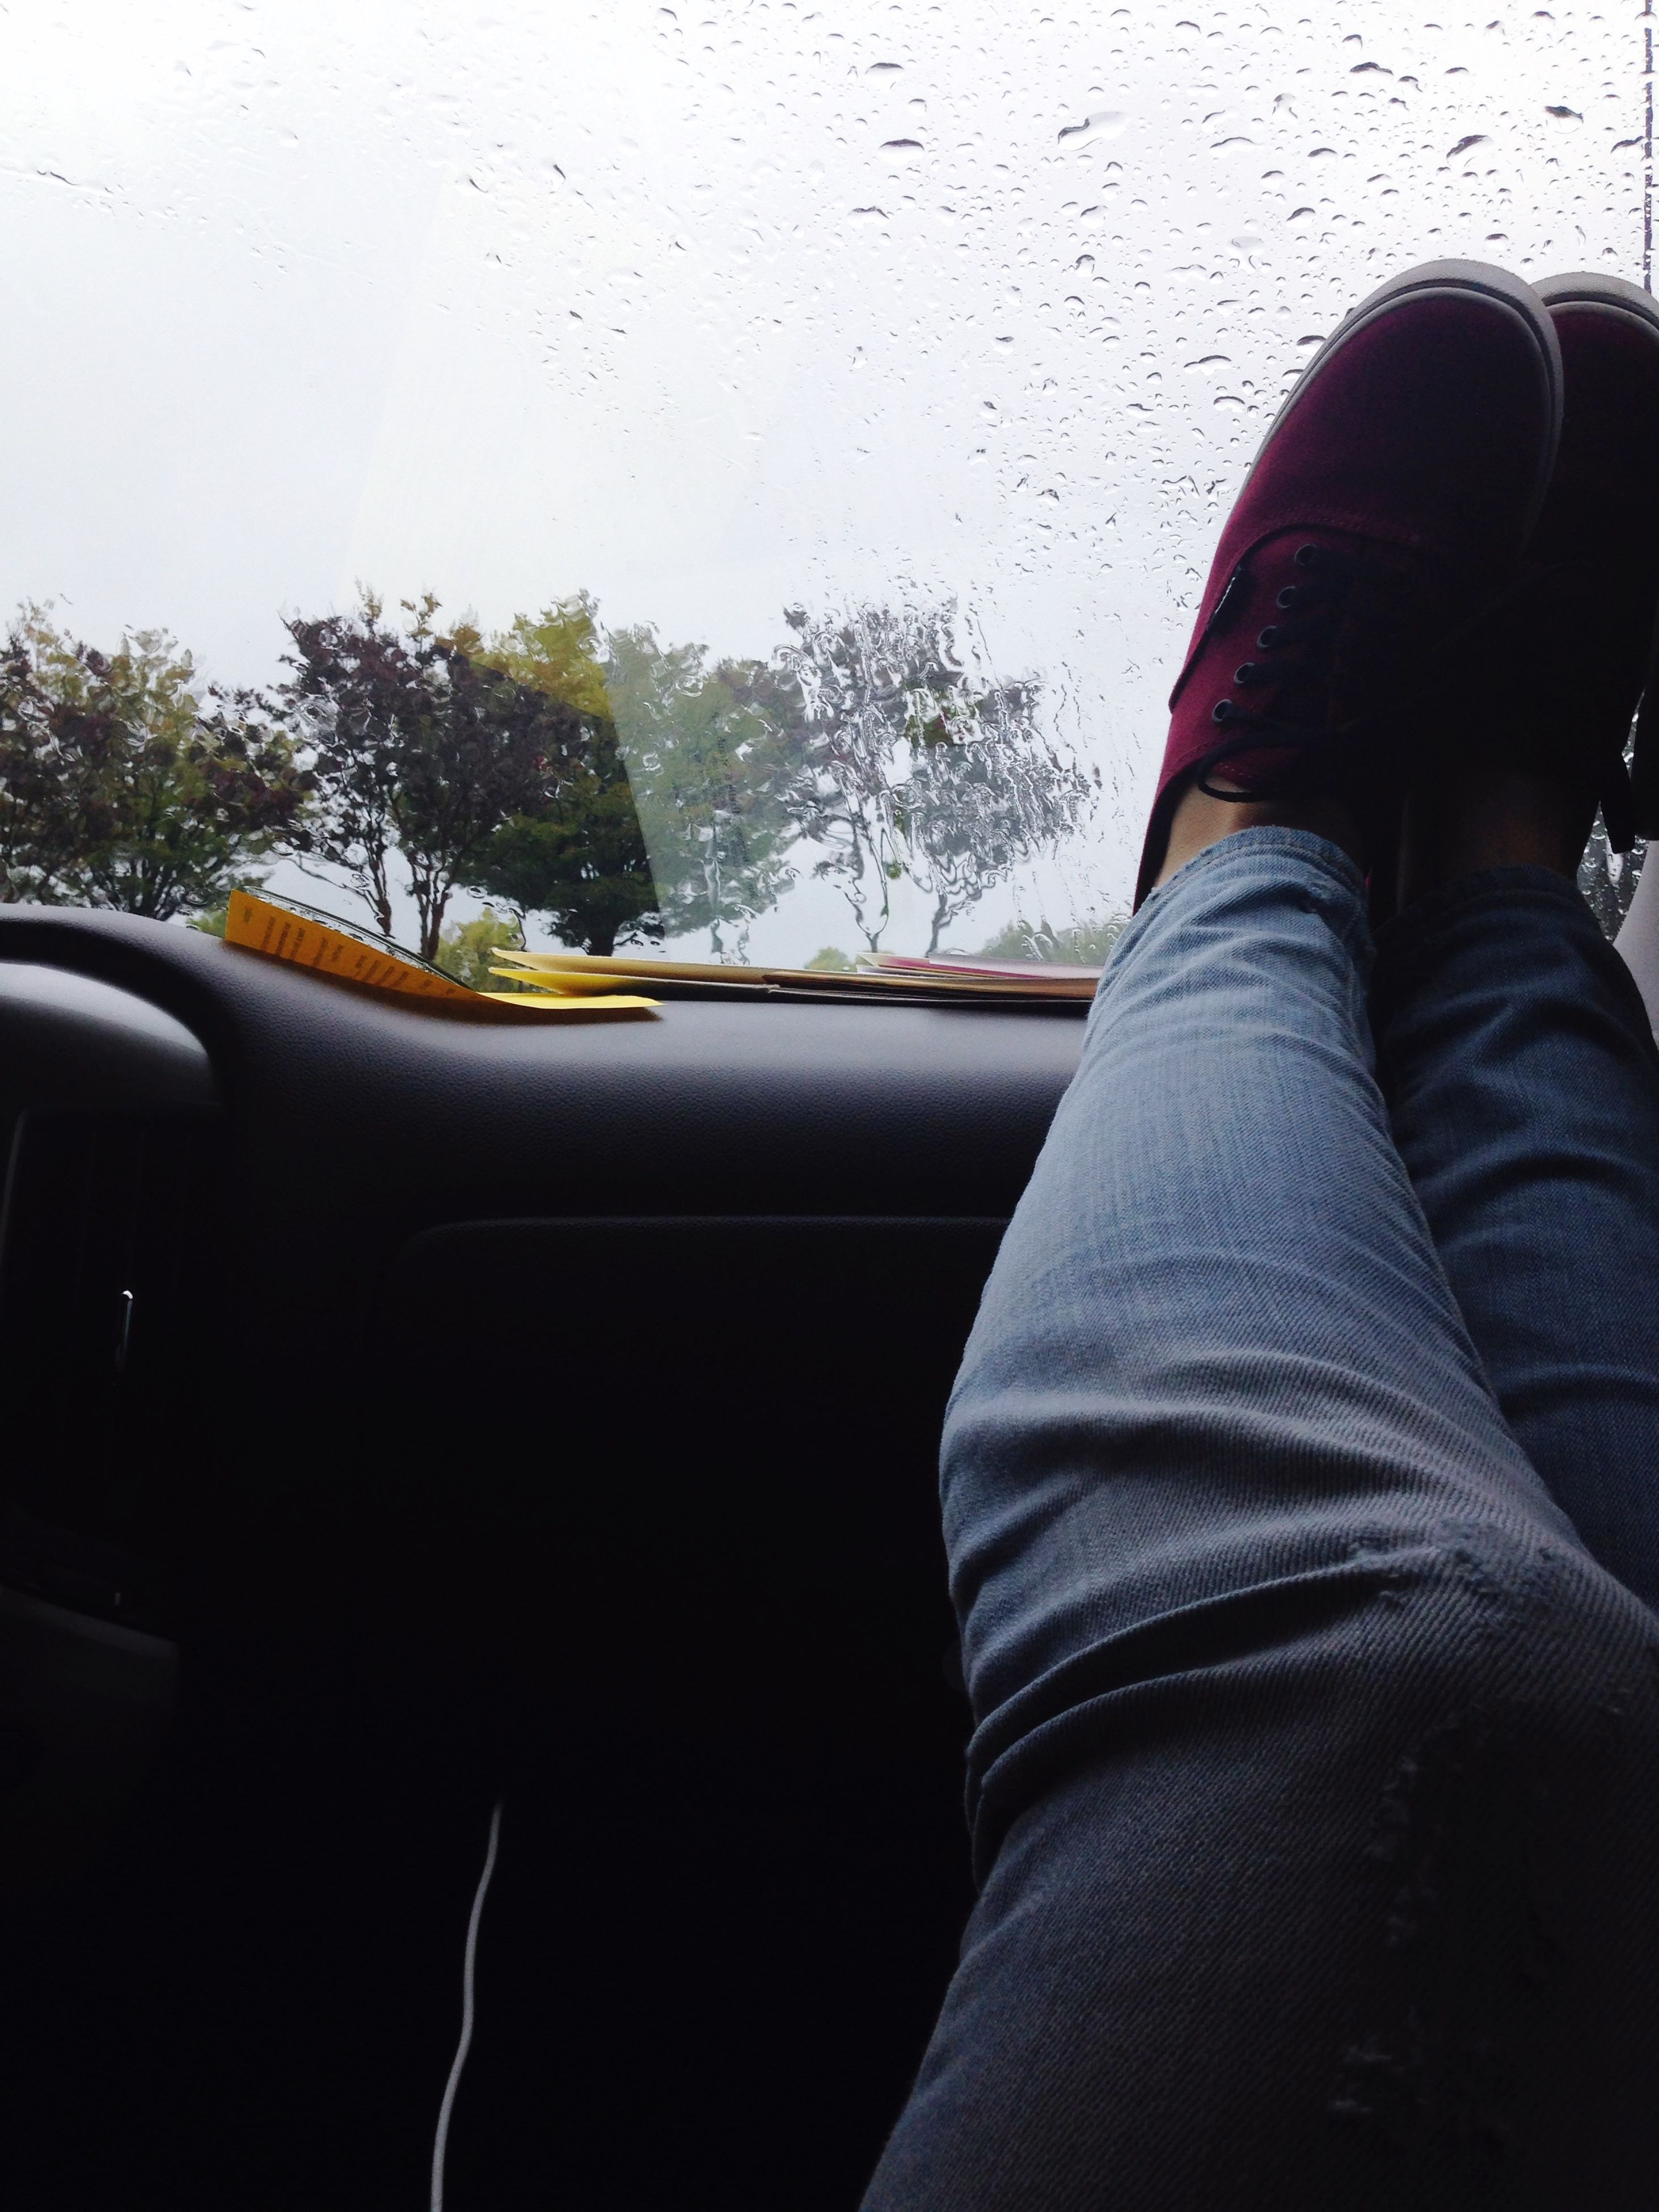 low section, person, personal perspective, shoe, transportation, car, land vehicle, mode of transport, part of, lifestyles, tree, men, street, human foot, vehicle interior, car interior, jeans